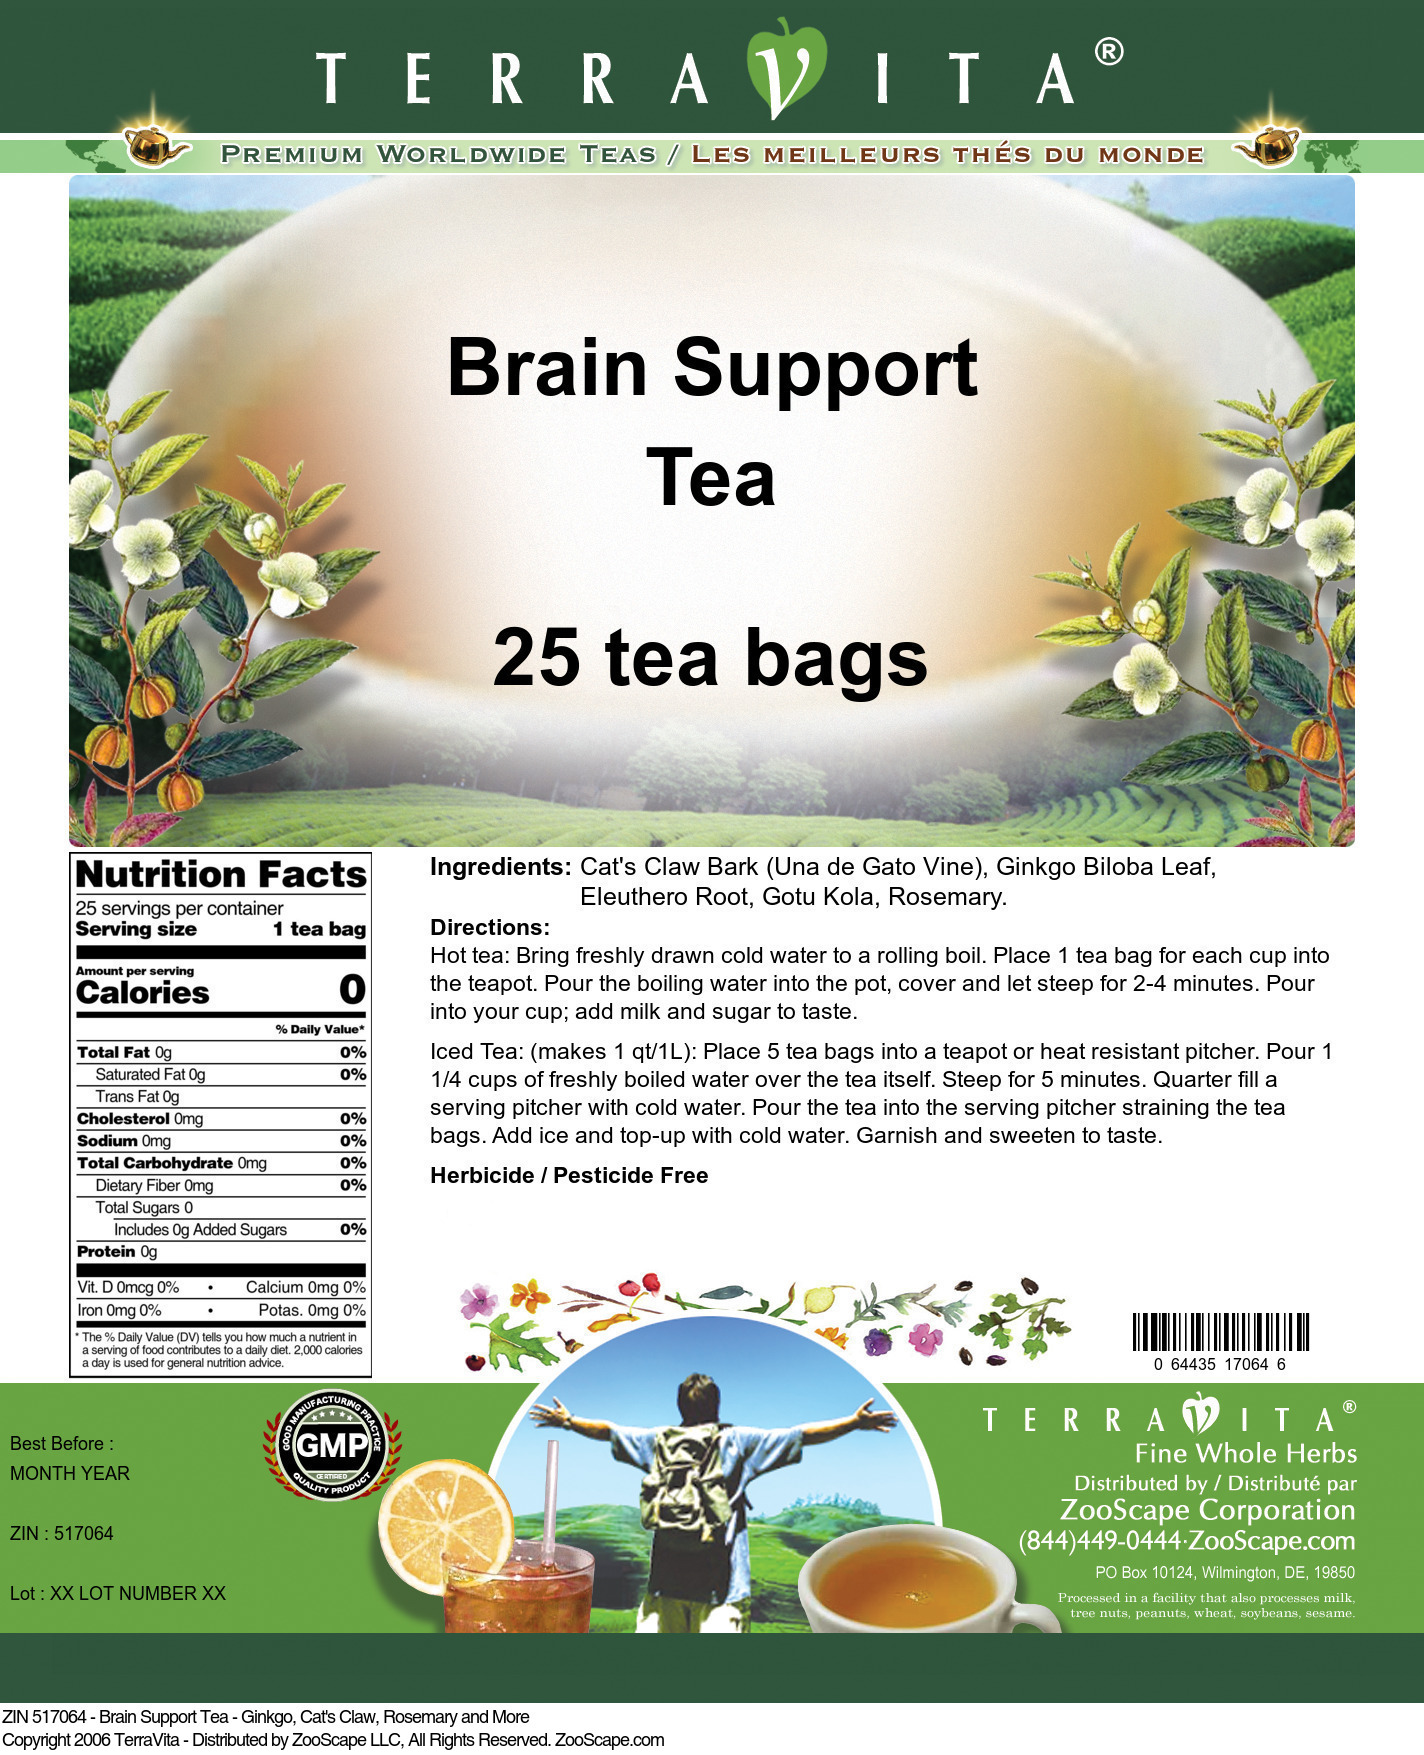 Brain Support Tea - Ginkgo, Cat's Claw, Rosemary and More